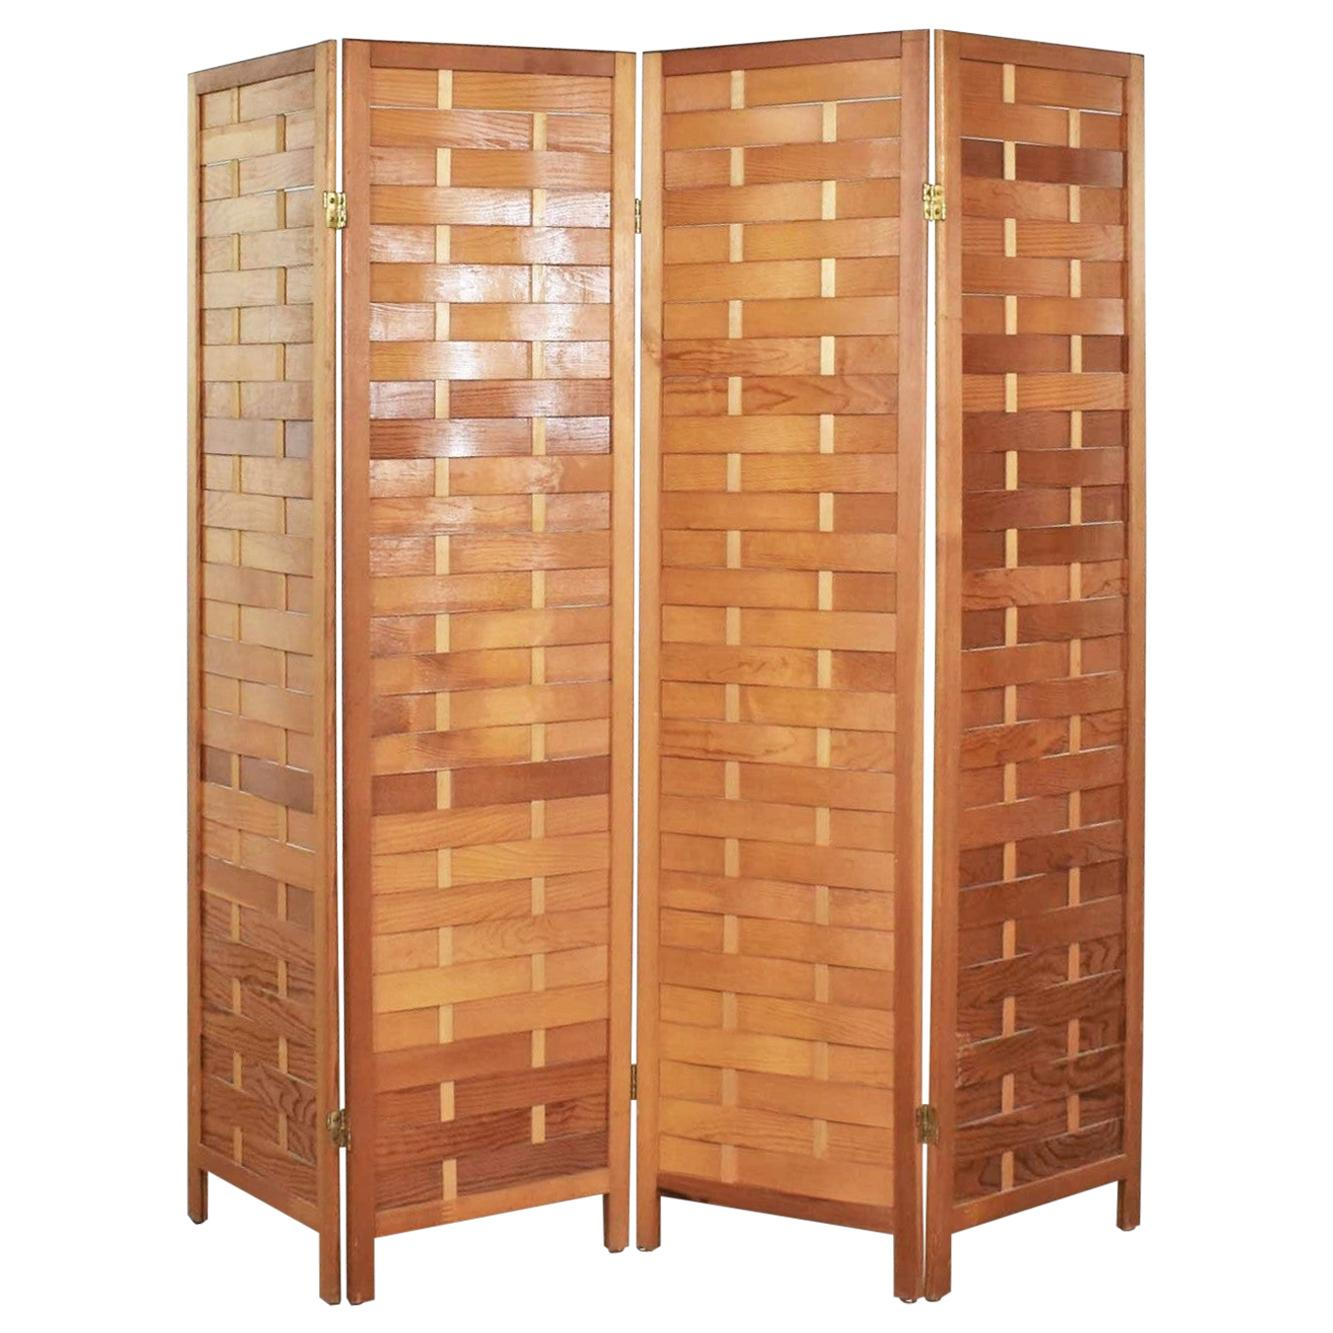 Midcentury Woven Wood Folding Screen 4-Panel Room Divider in Pine